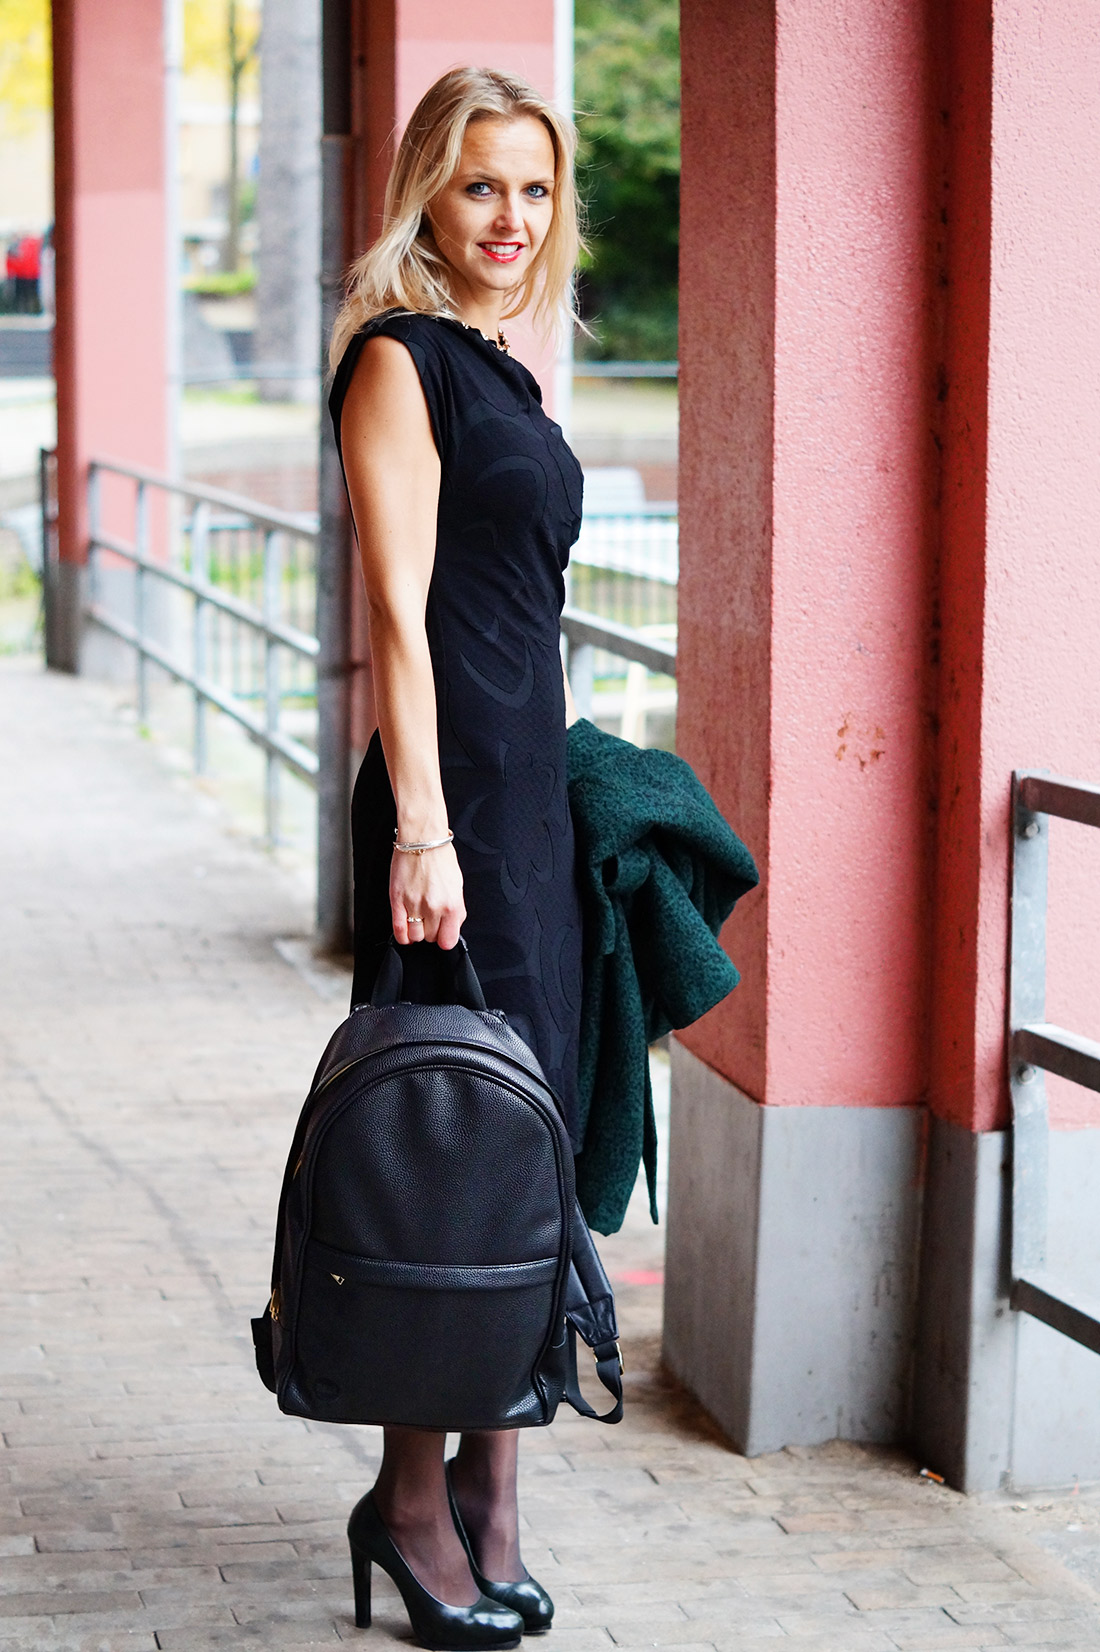 Bag At You Fashion Blog Mi Pac Backpack Maxwell Black Black Dress Autumn In Amsterdam Bag At You